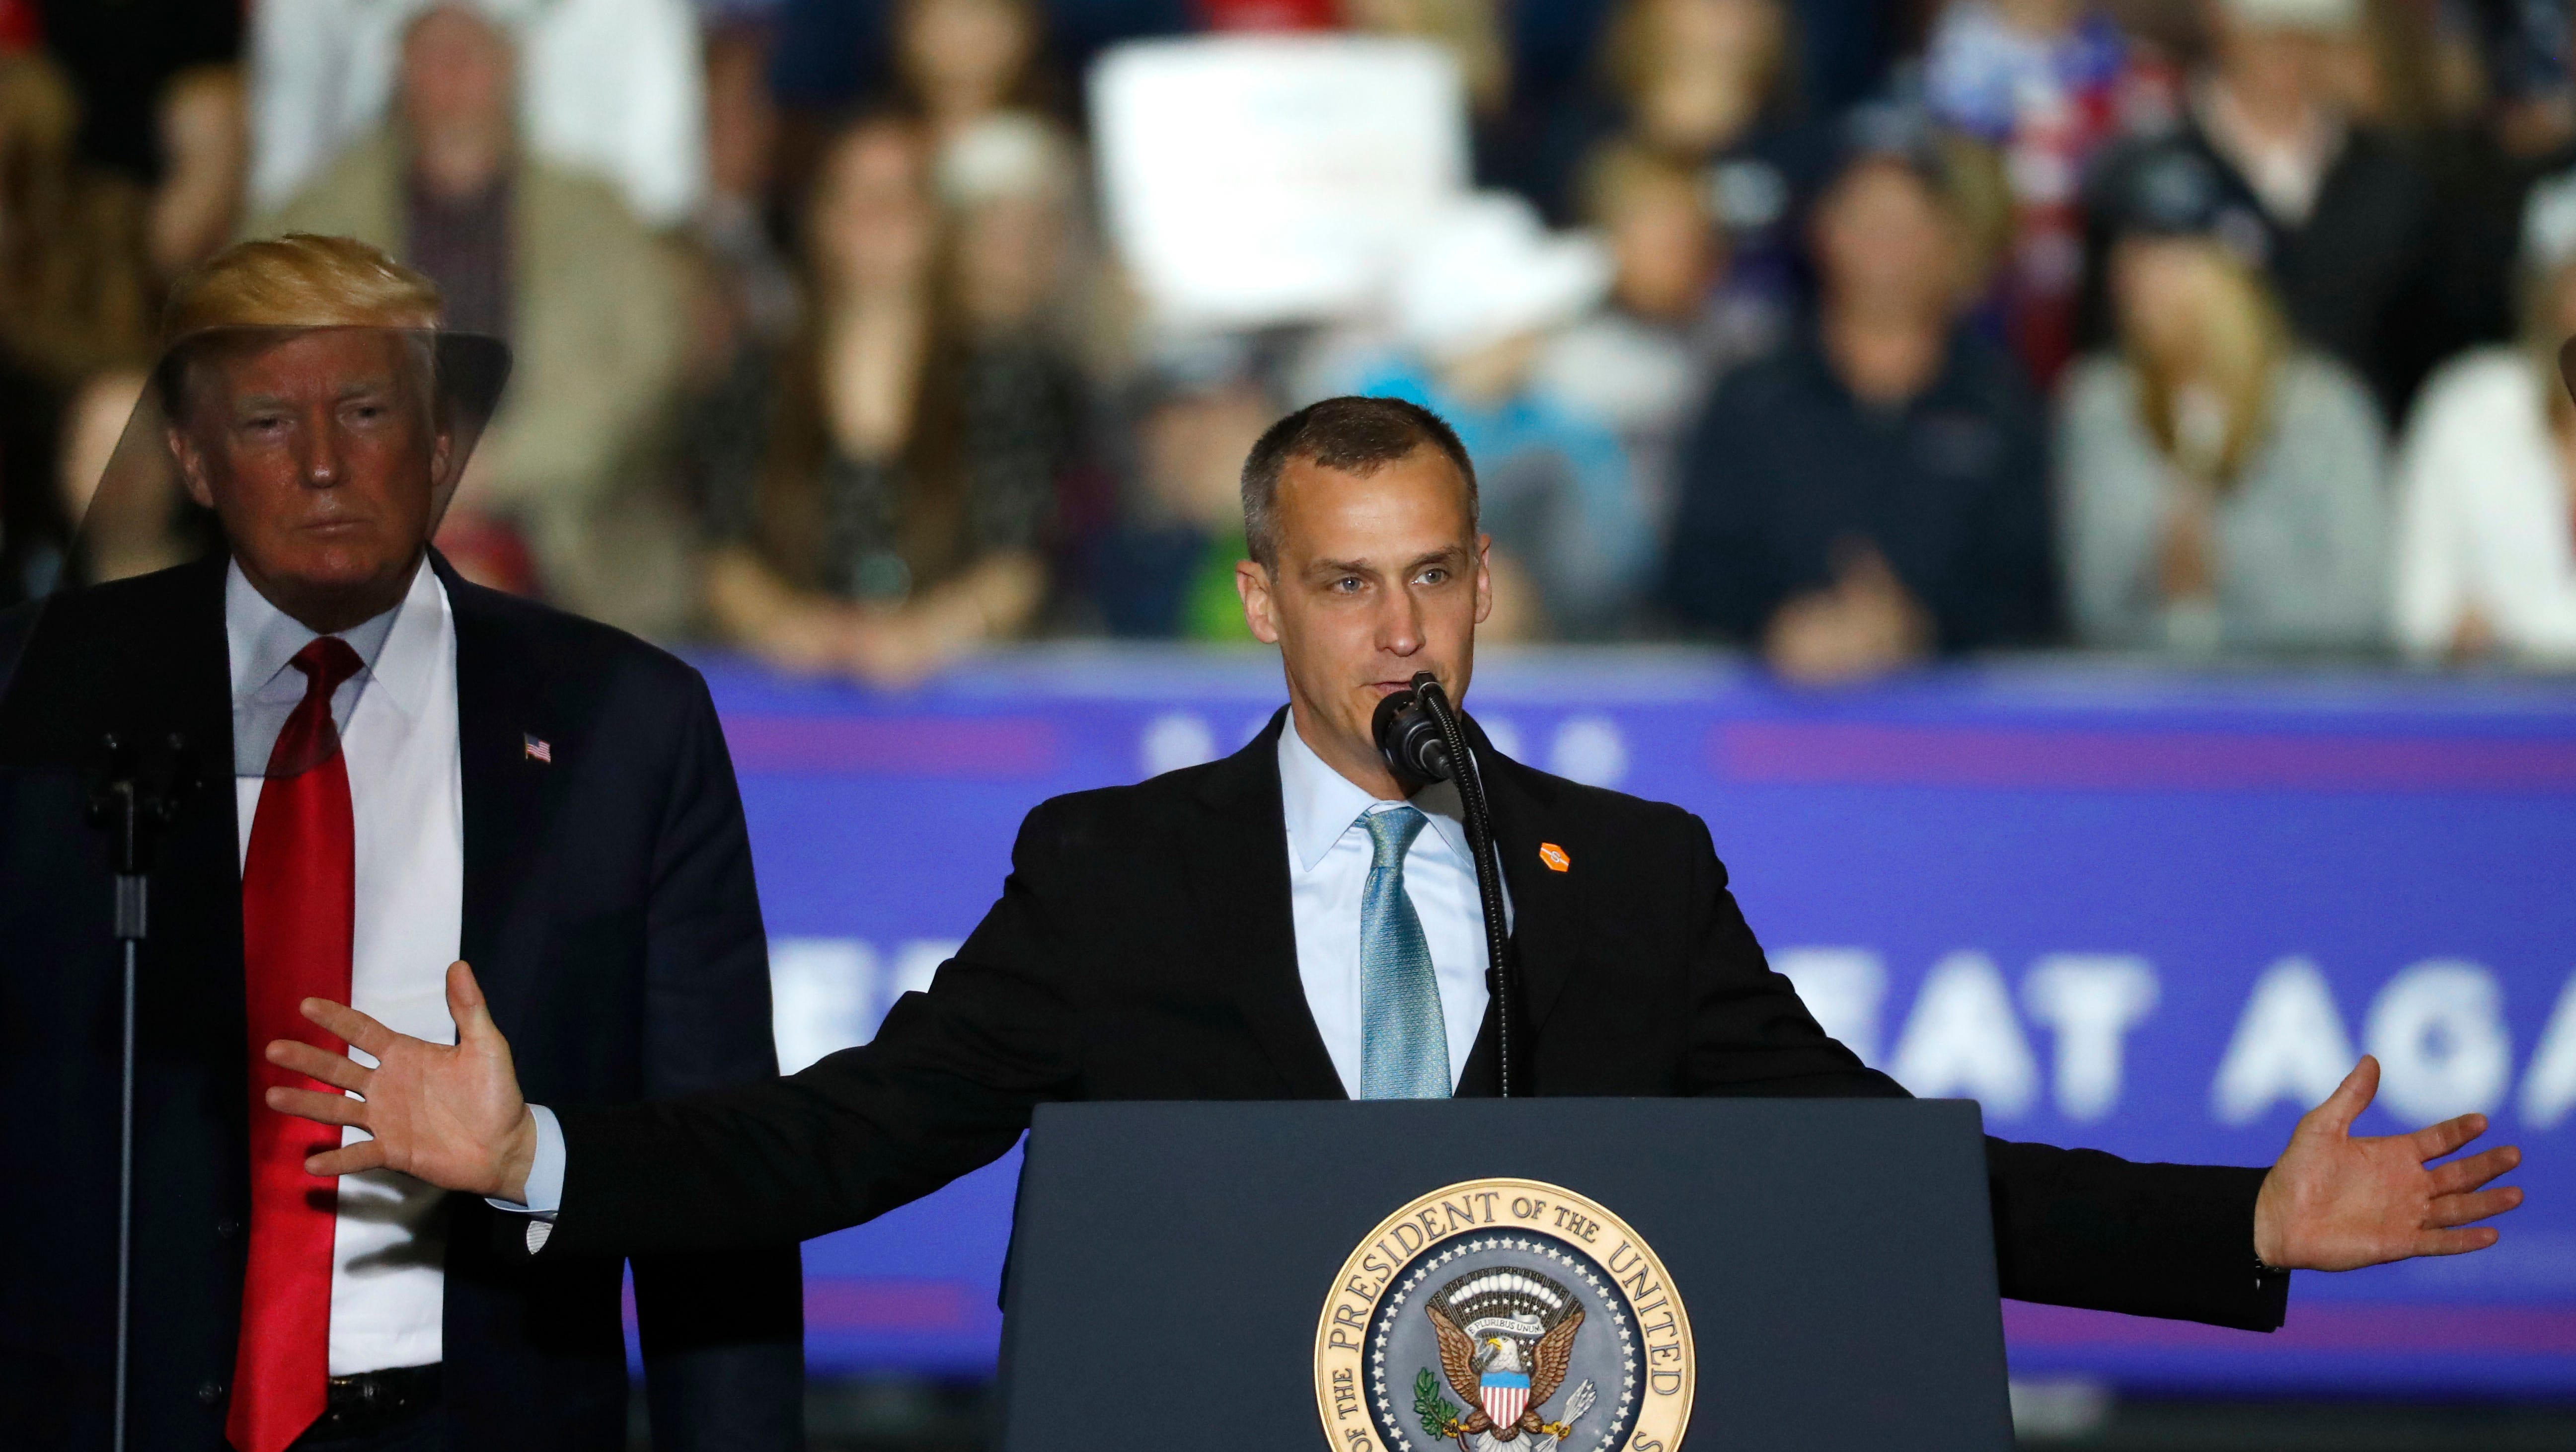 Corey Lewandowski, with President Donald Trump at his side, speaks during a campaign rally in Washington Township, Mich., in April.